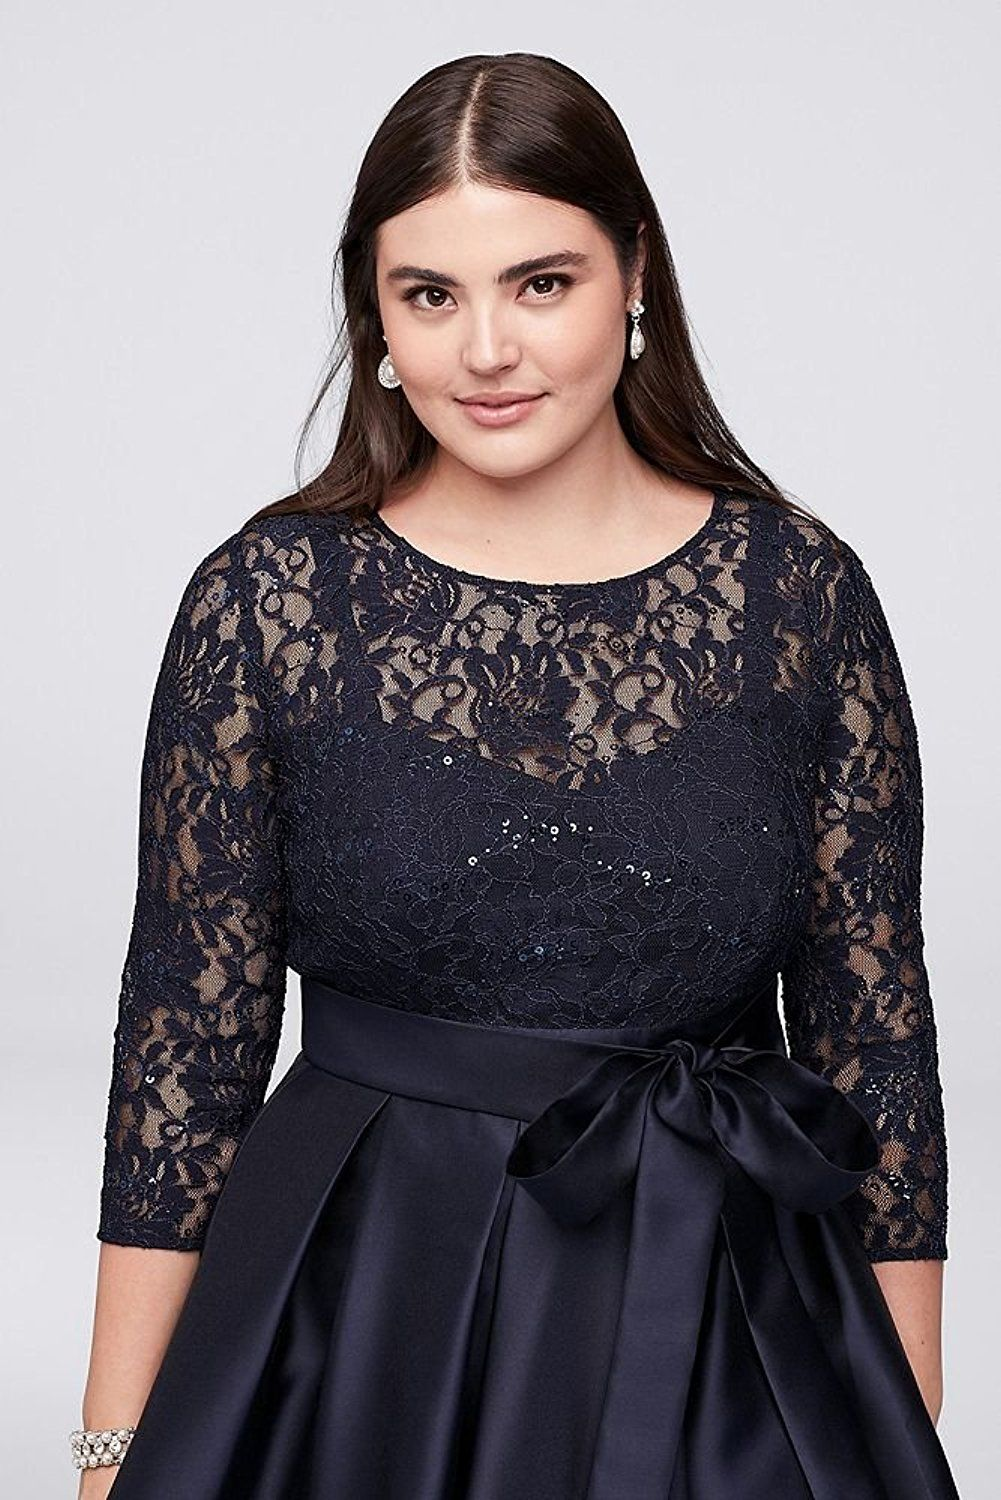 Plus Size Wedding Guest Dress Mikado Plus Size Lace Bodice Plus Size High Low Ball Mot Plus Size Wedding Guest Dresses High Low Ball Gown Maxi Dress Wedding